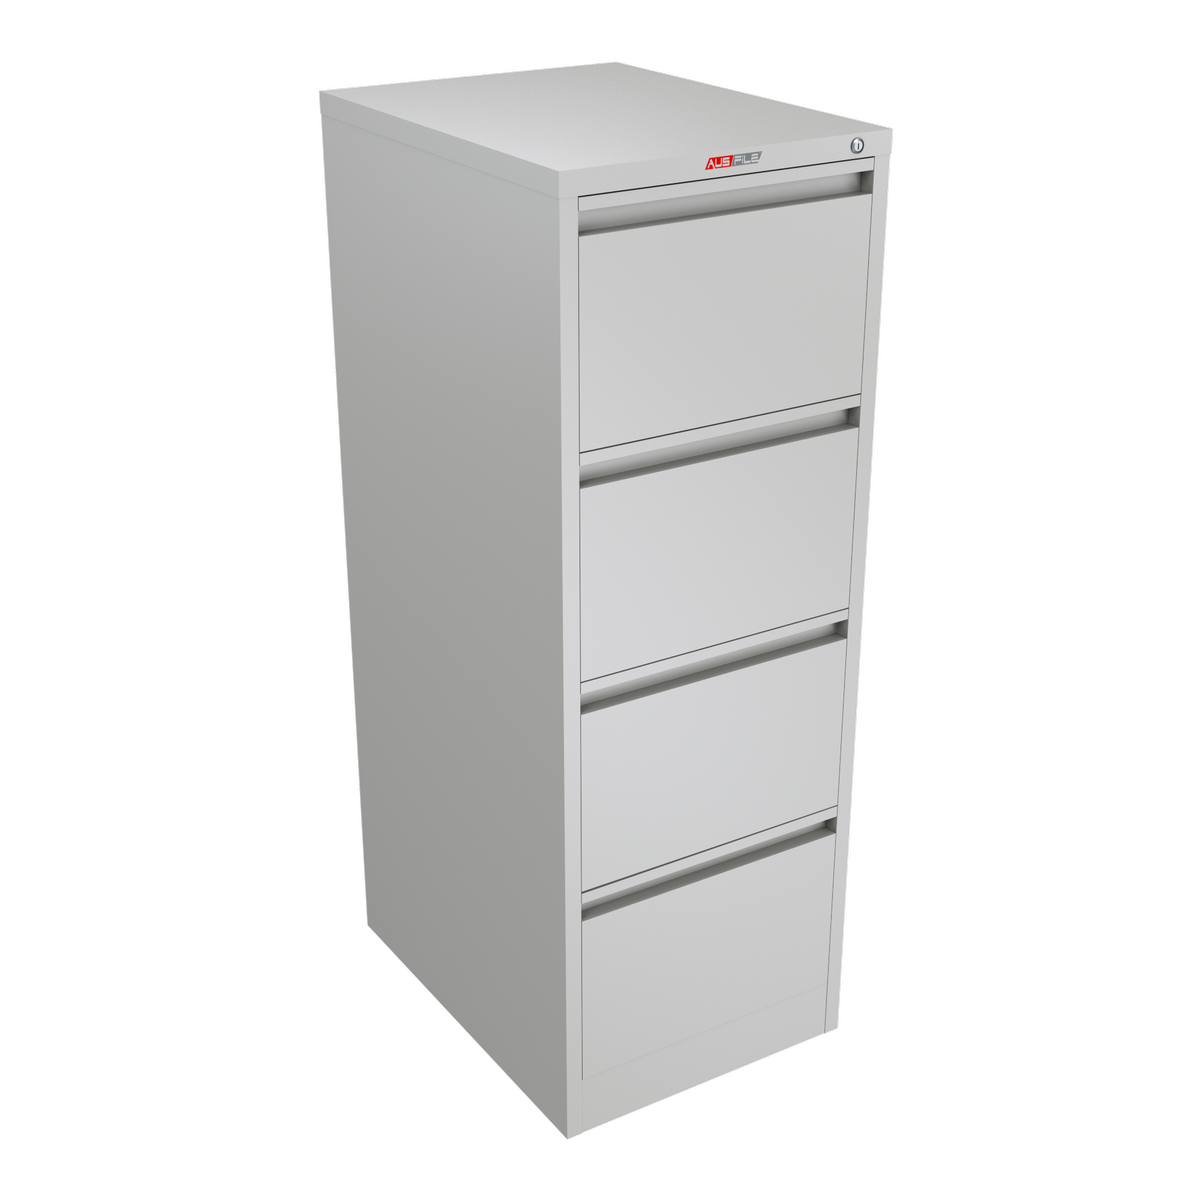 AUSFILE 4 DRAWER FILING CABINET